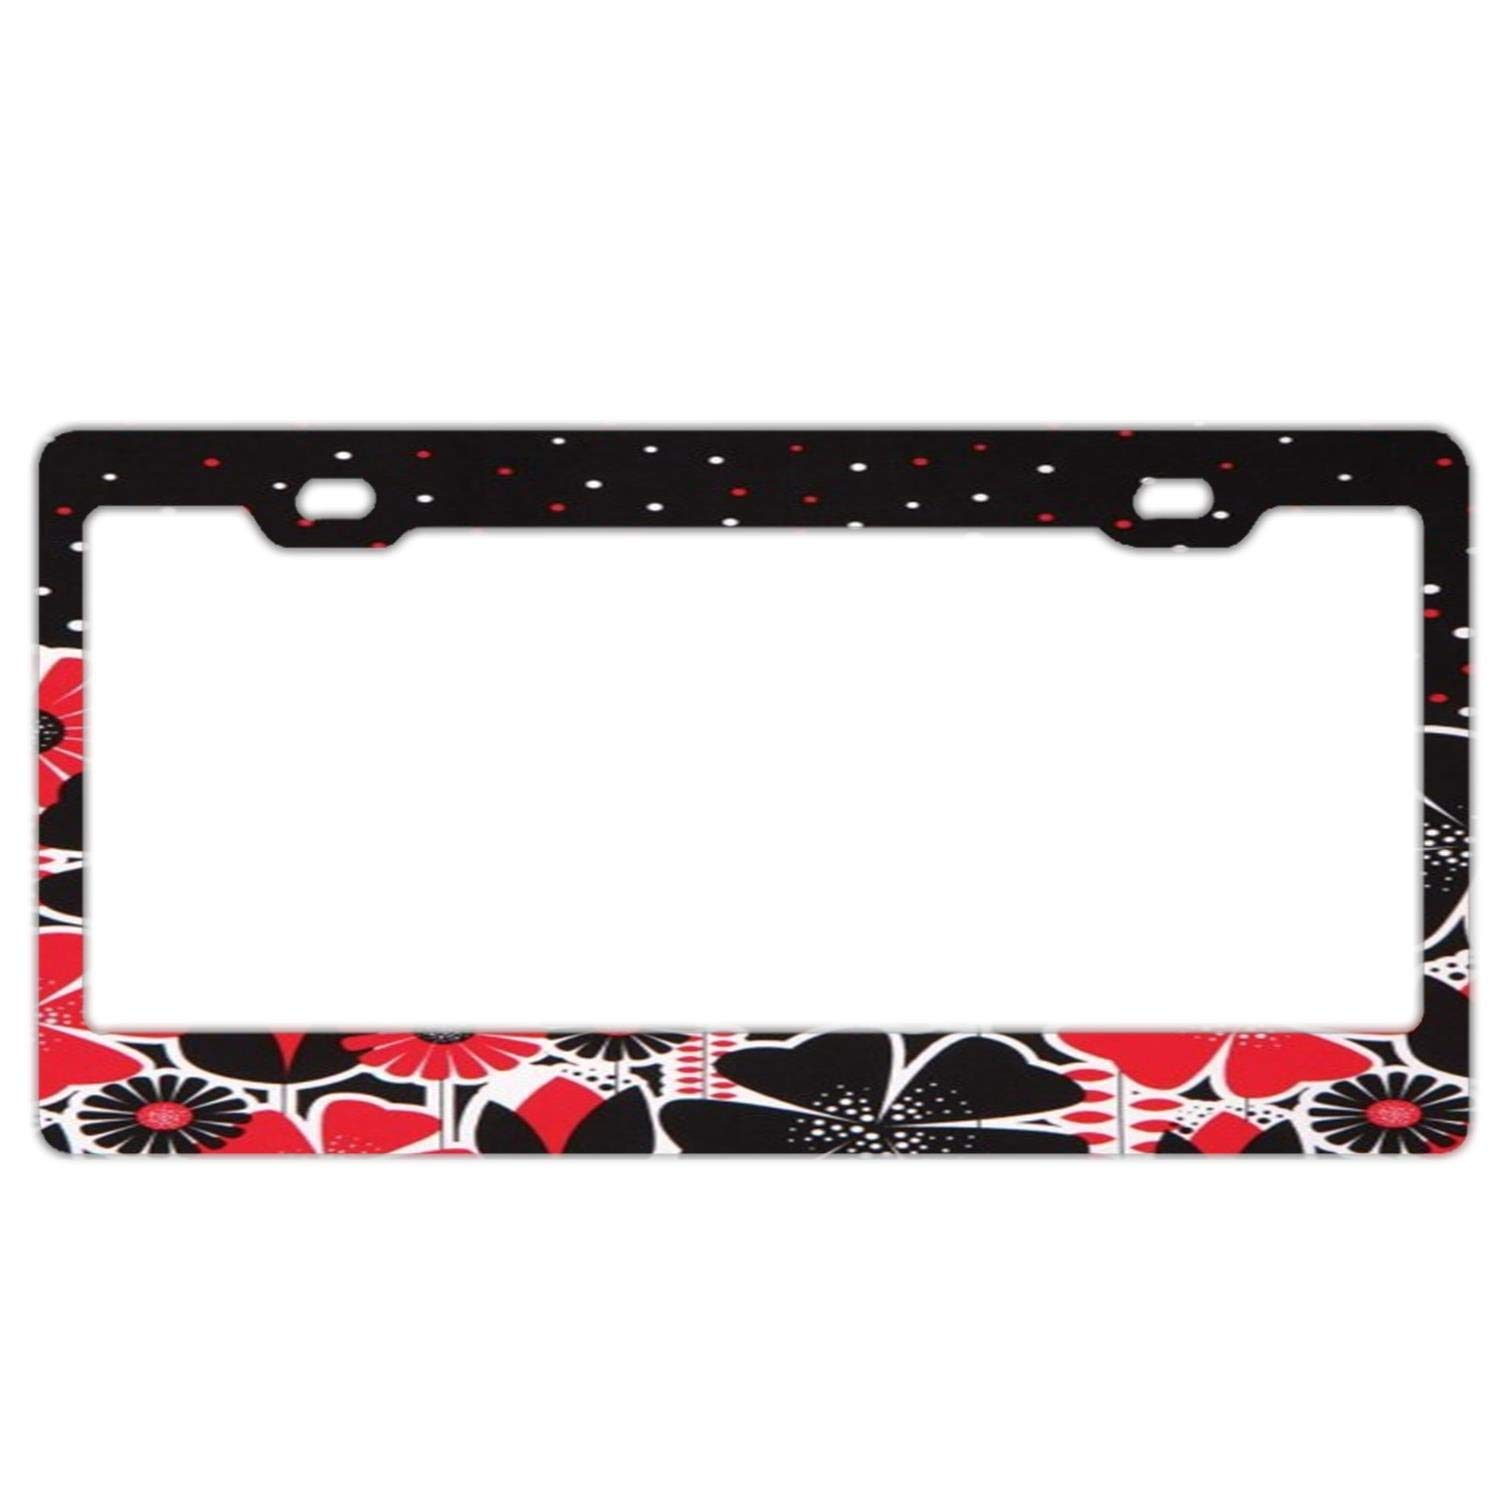 PAKISTAN PAKISTANI FLAG GOLD COUNTRY Metal License Plate Frame Tag Holder